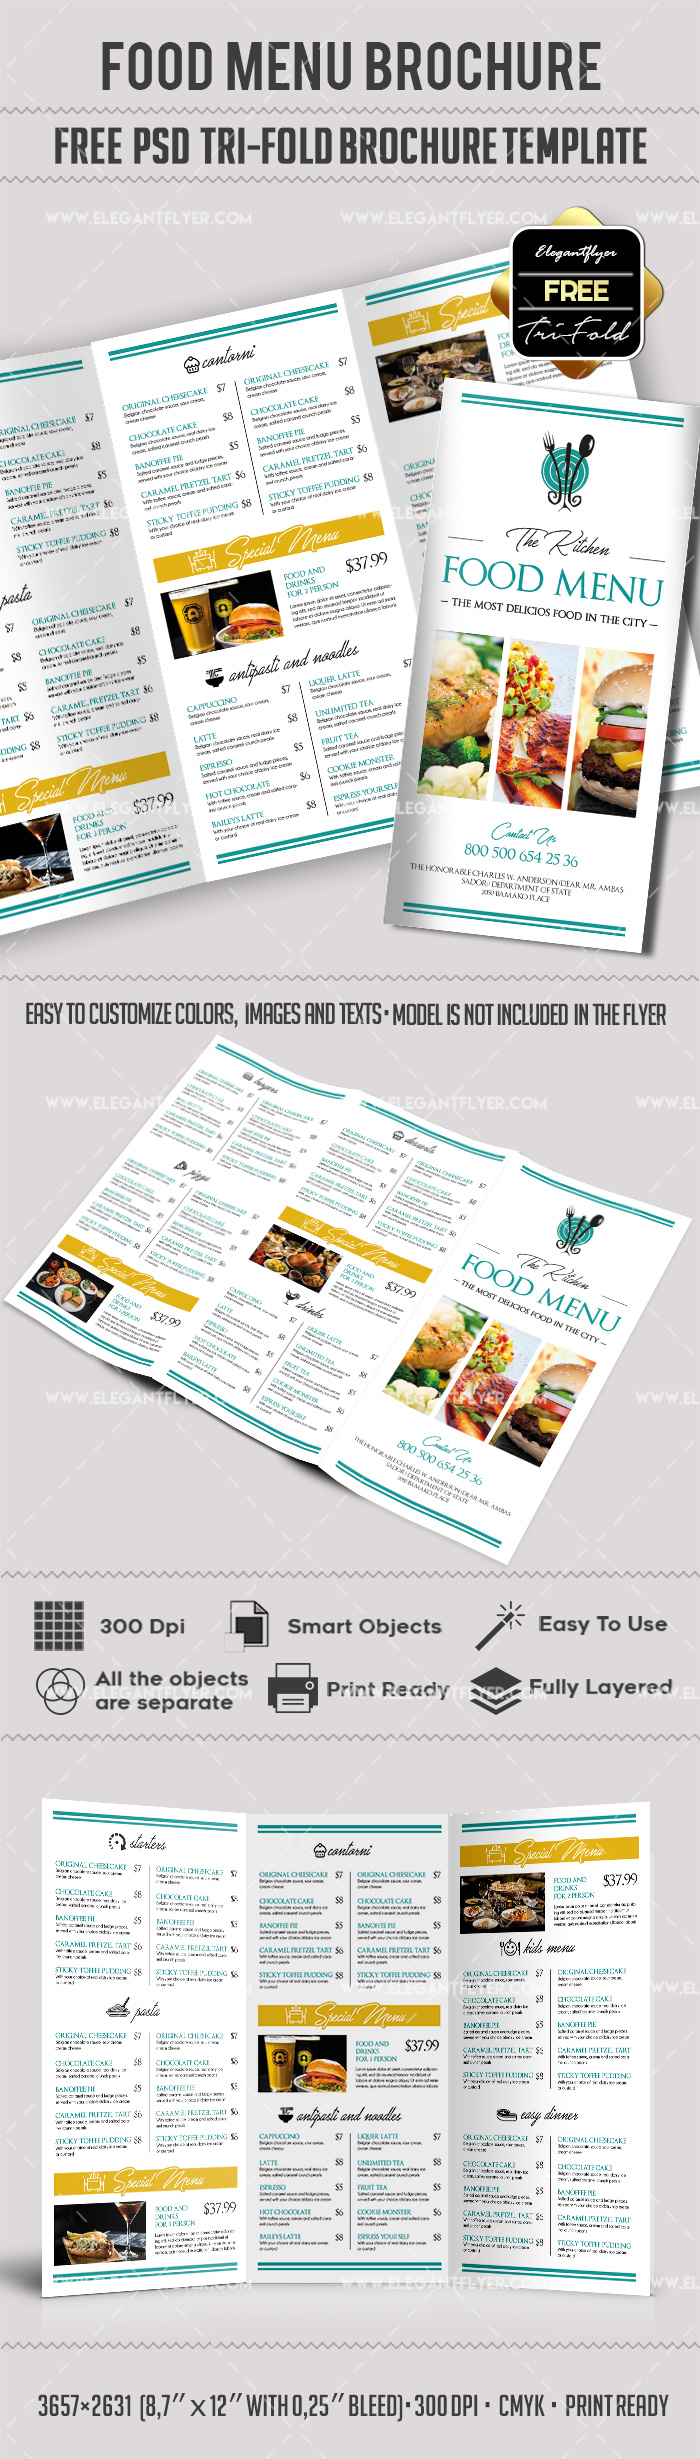 psd tri fold brochure template - free food menu tri fold psd brochure template by